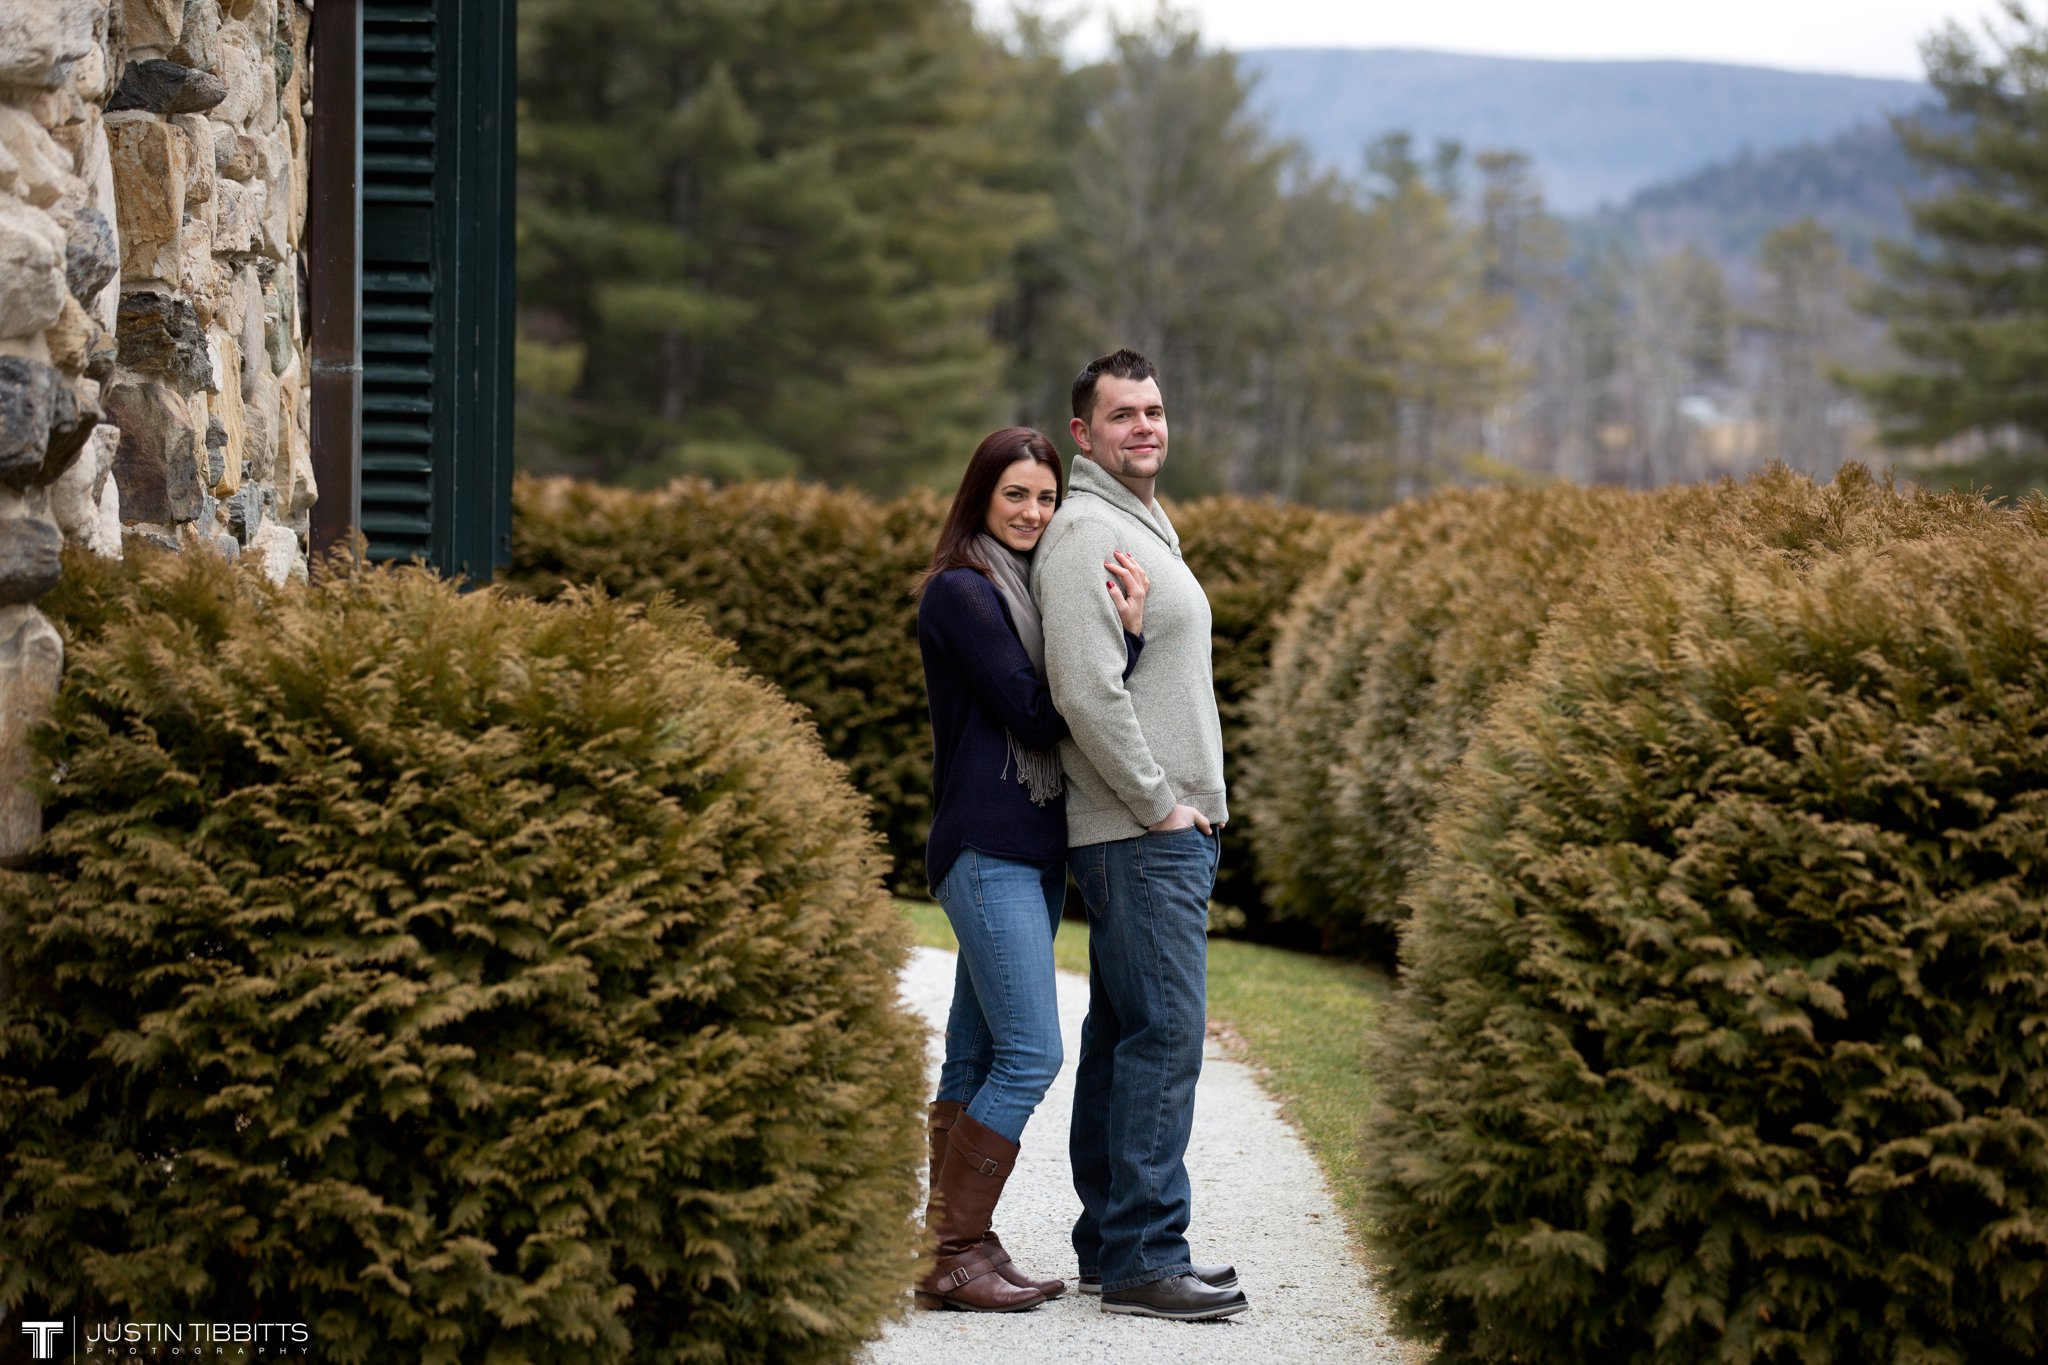 Lauren and Jordan's Engagement Photos at The Mount, Lenox,MA_0009